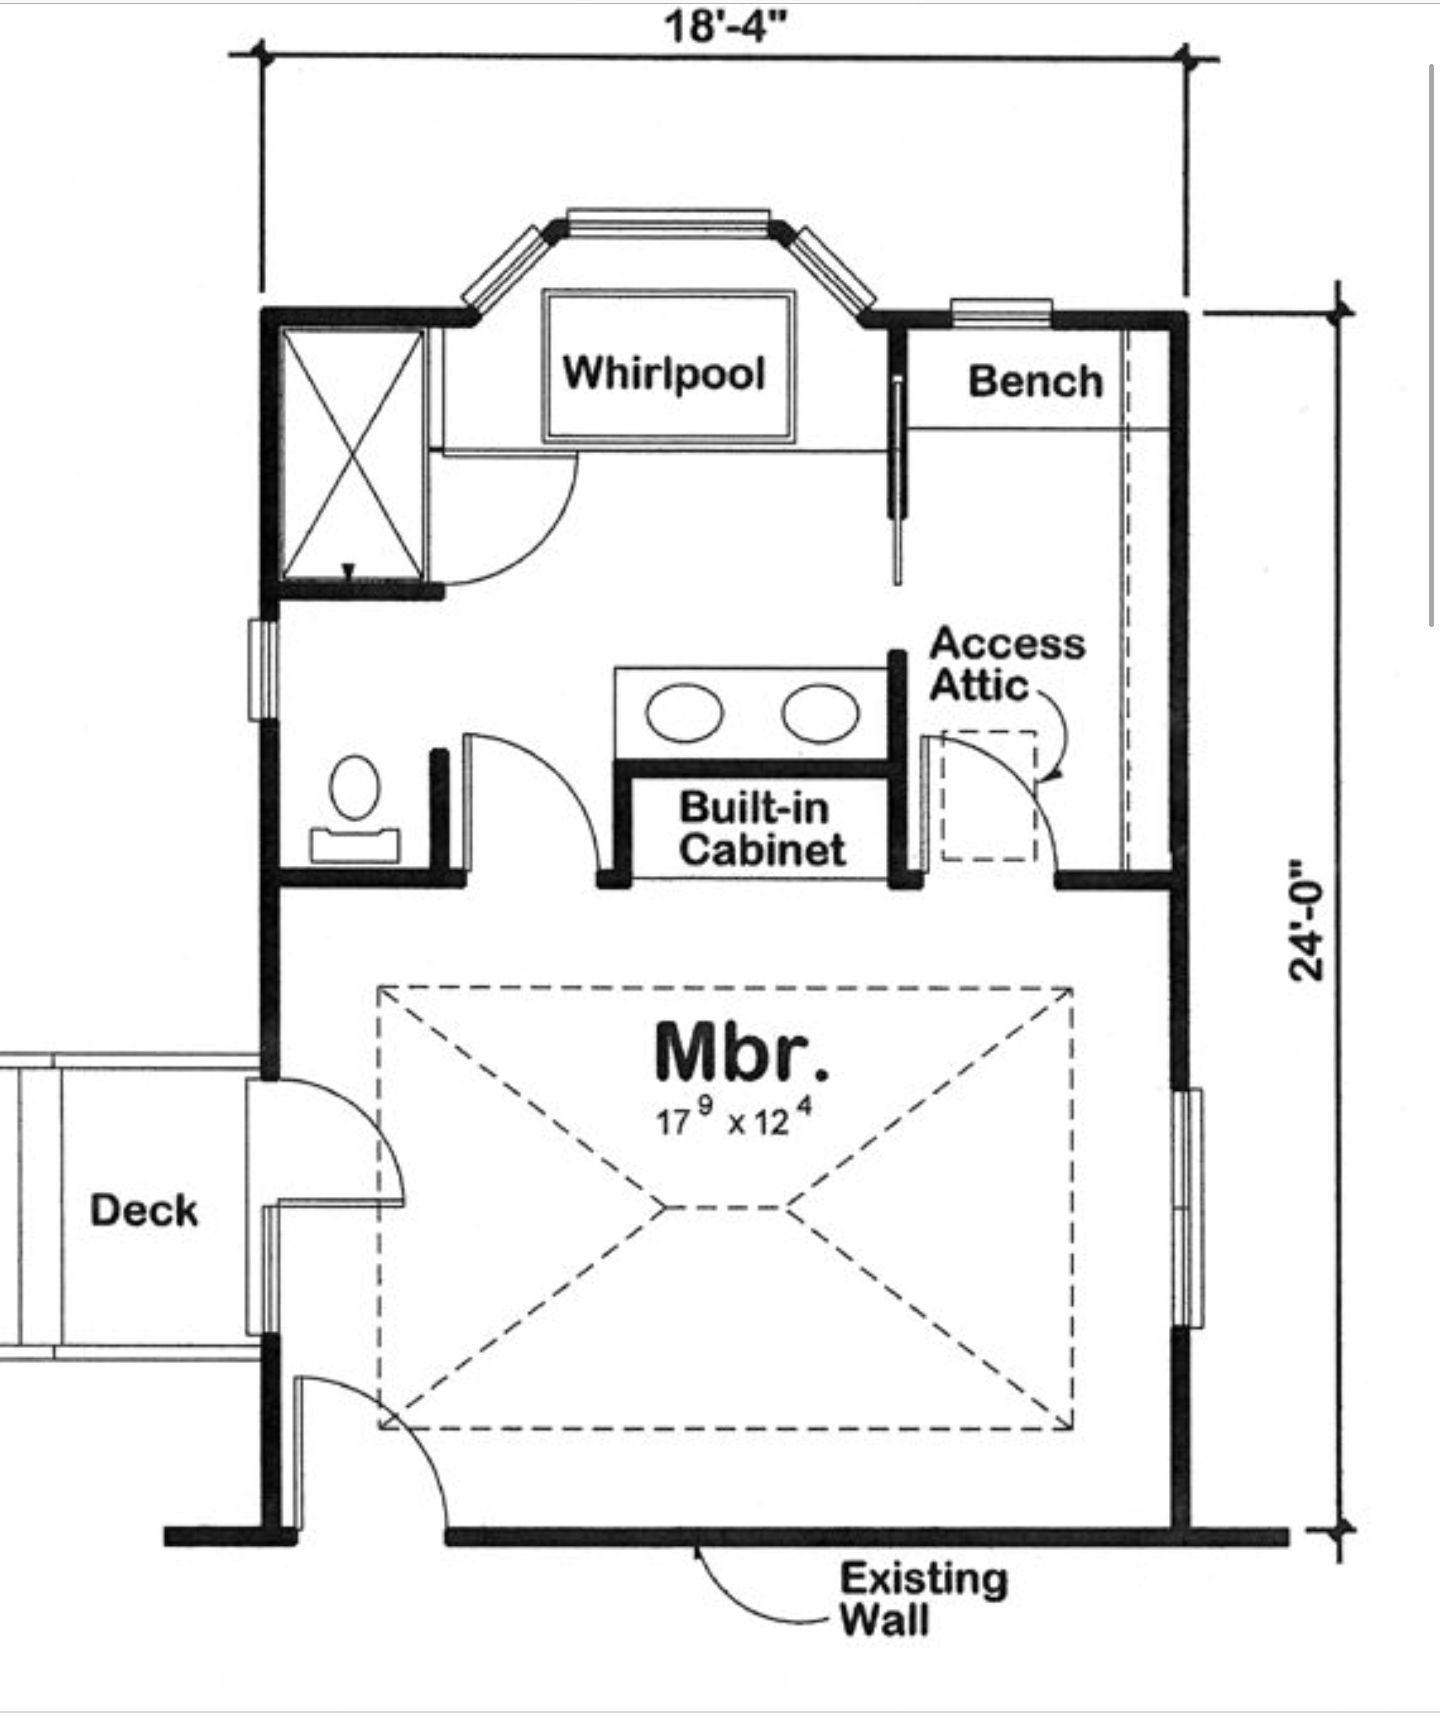 Home Additions Plan Drawings: Pin By Tracy DeJonge On Home Addition Orshal